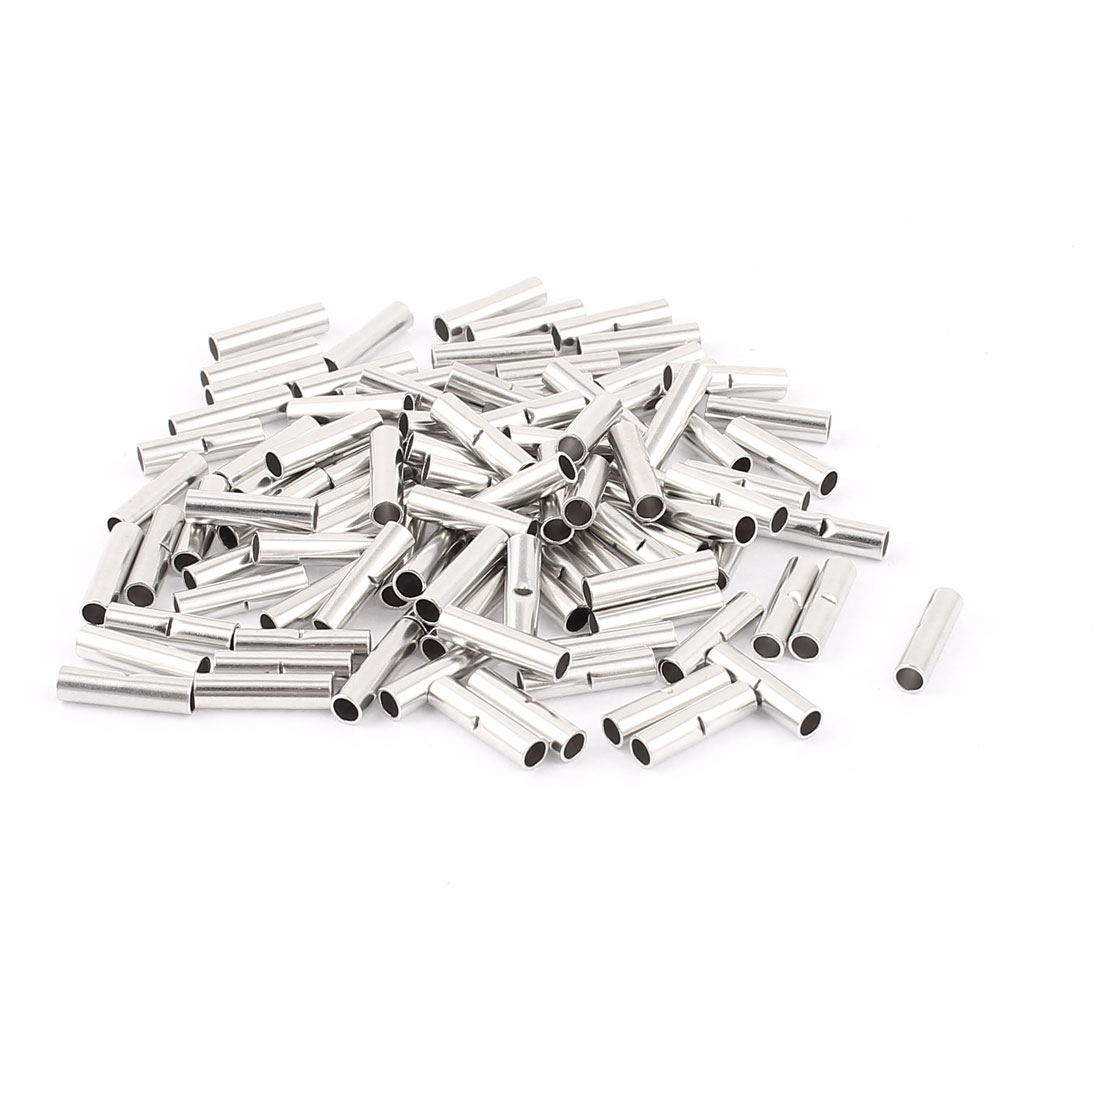 100Pcs BV-2 Uninsulated Butt Connectors Terminal for 16-14 A.W.G Wire